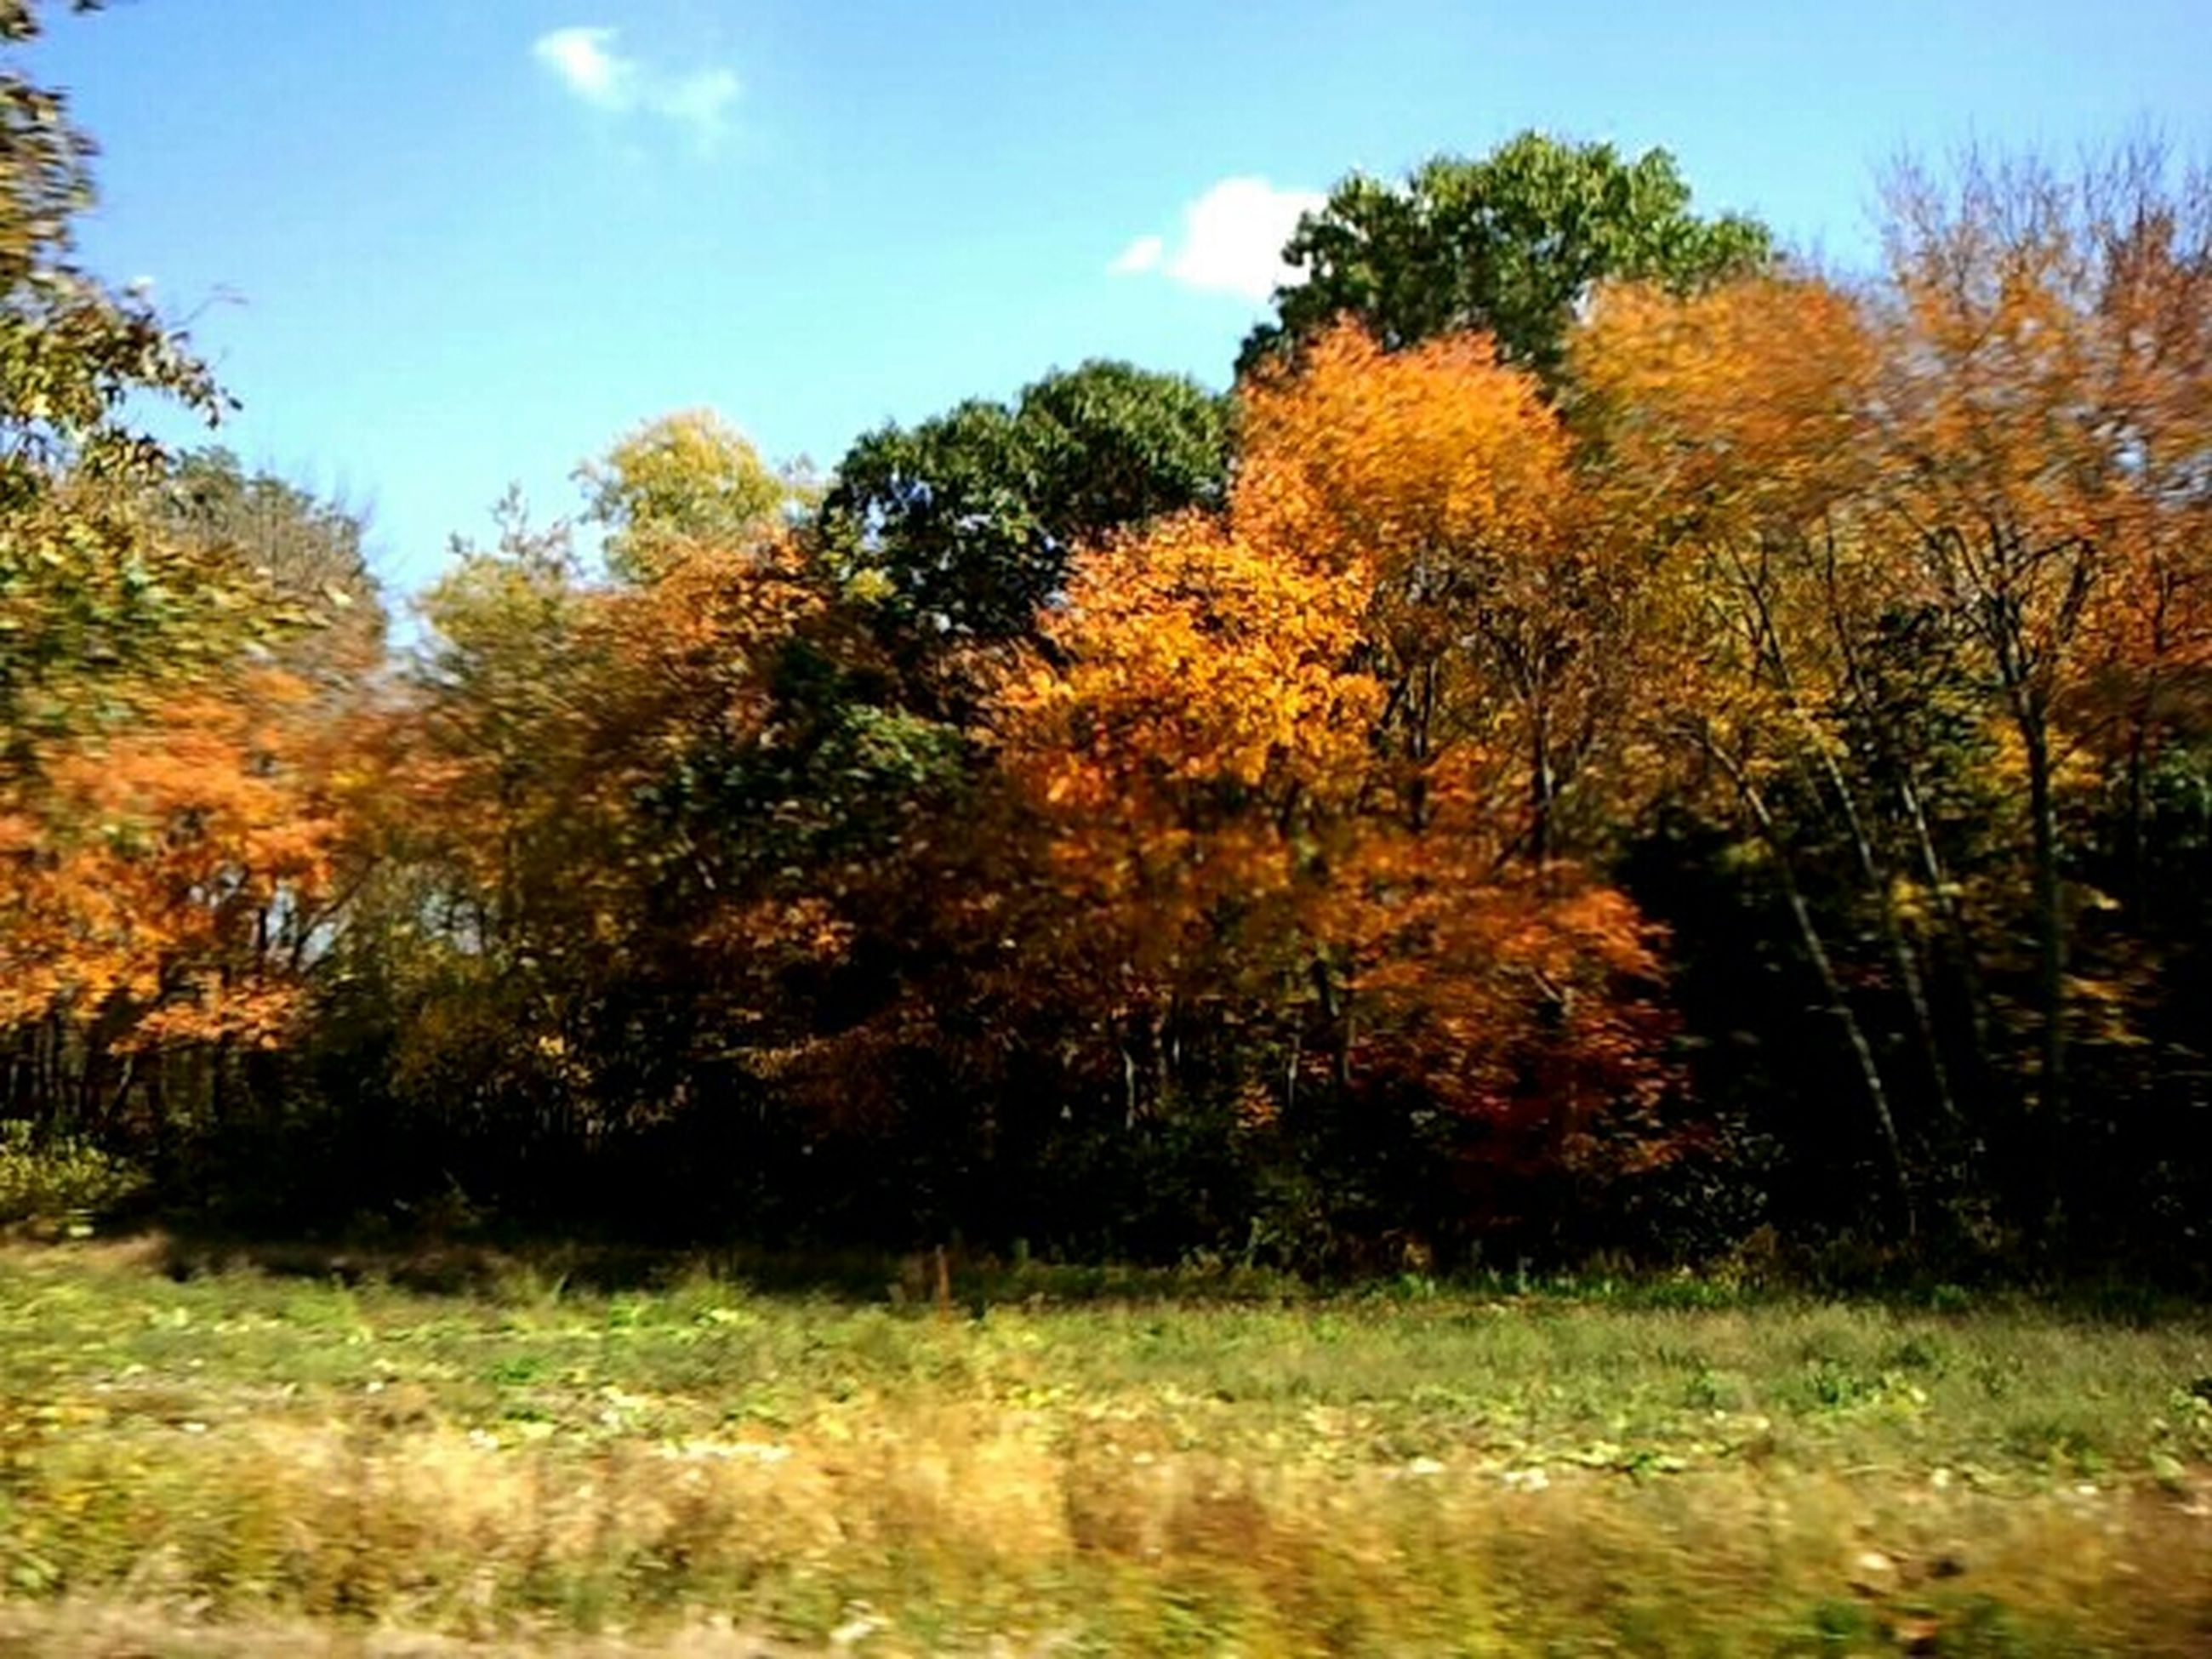 tree, autumn, tranquility, tranquil scene, growth, beauty in nature, change, field, nature, scenics, landscape, grass, season, sky, orange color, non-urban scene, grassy, forest, idyllic, outdoors